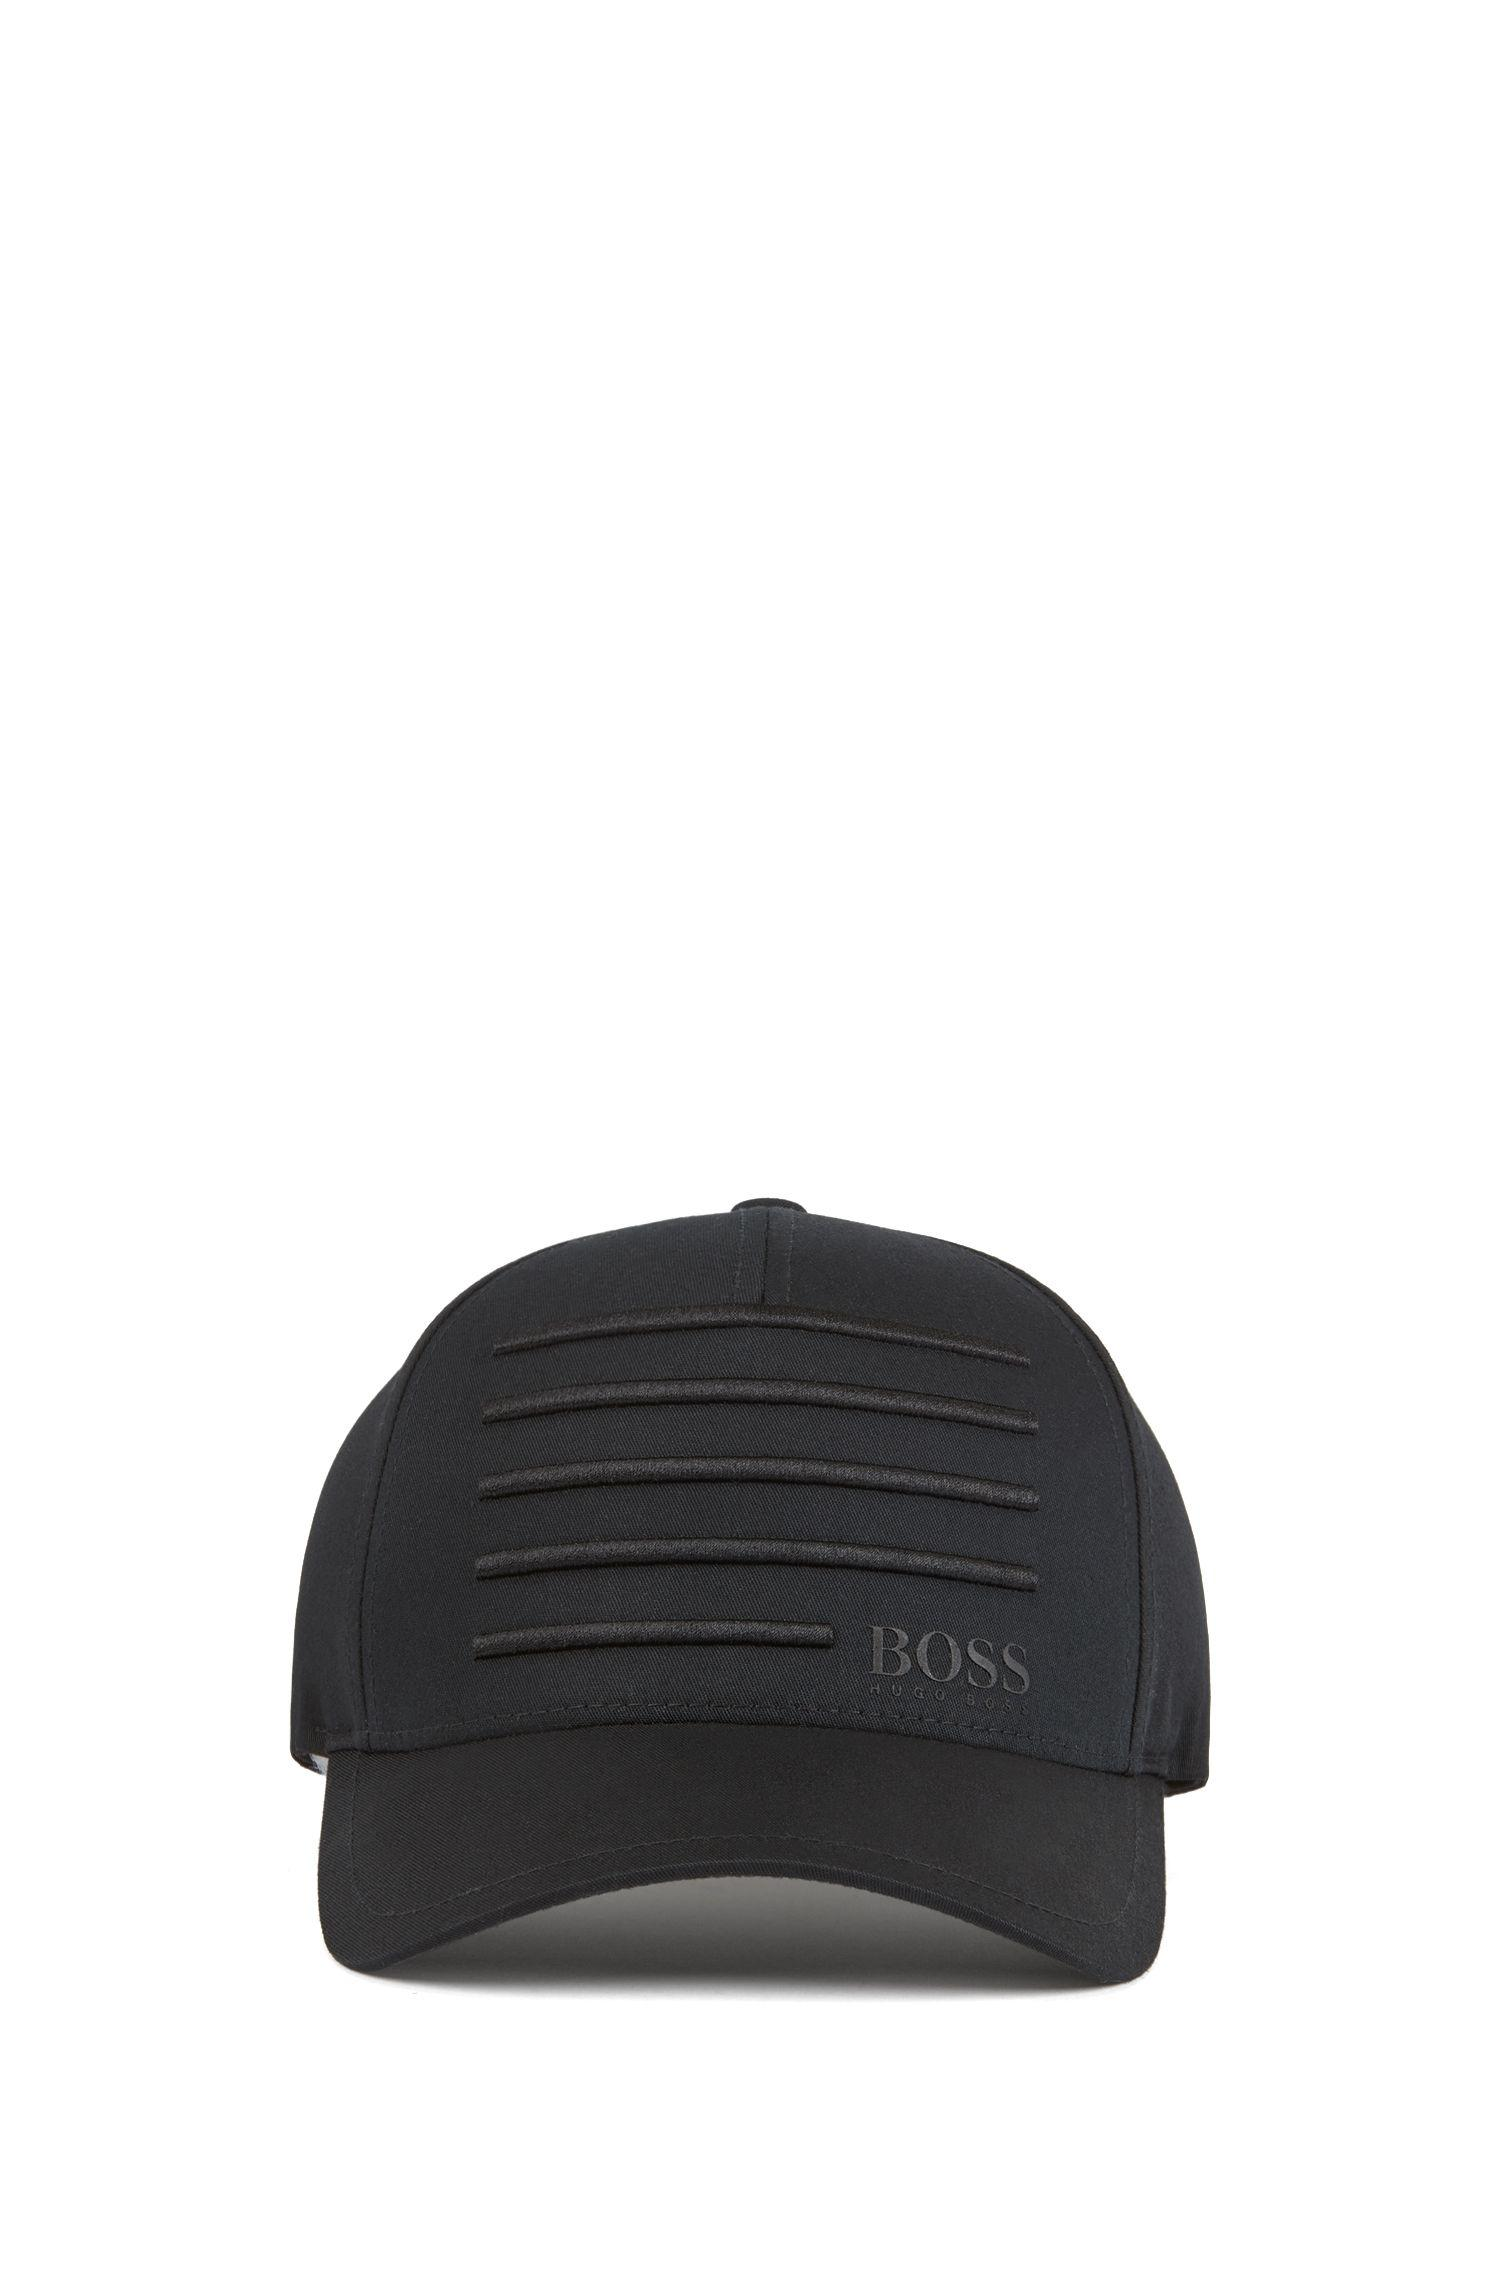 848ce81989a BOSS - Black Cap With 3d Embroidered Stripes for Men - Lyst. View fullscreen